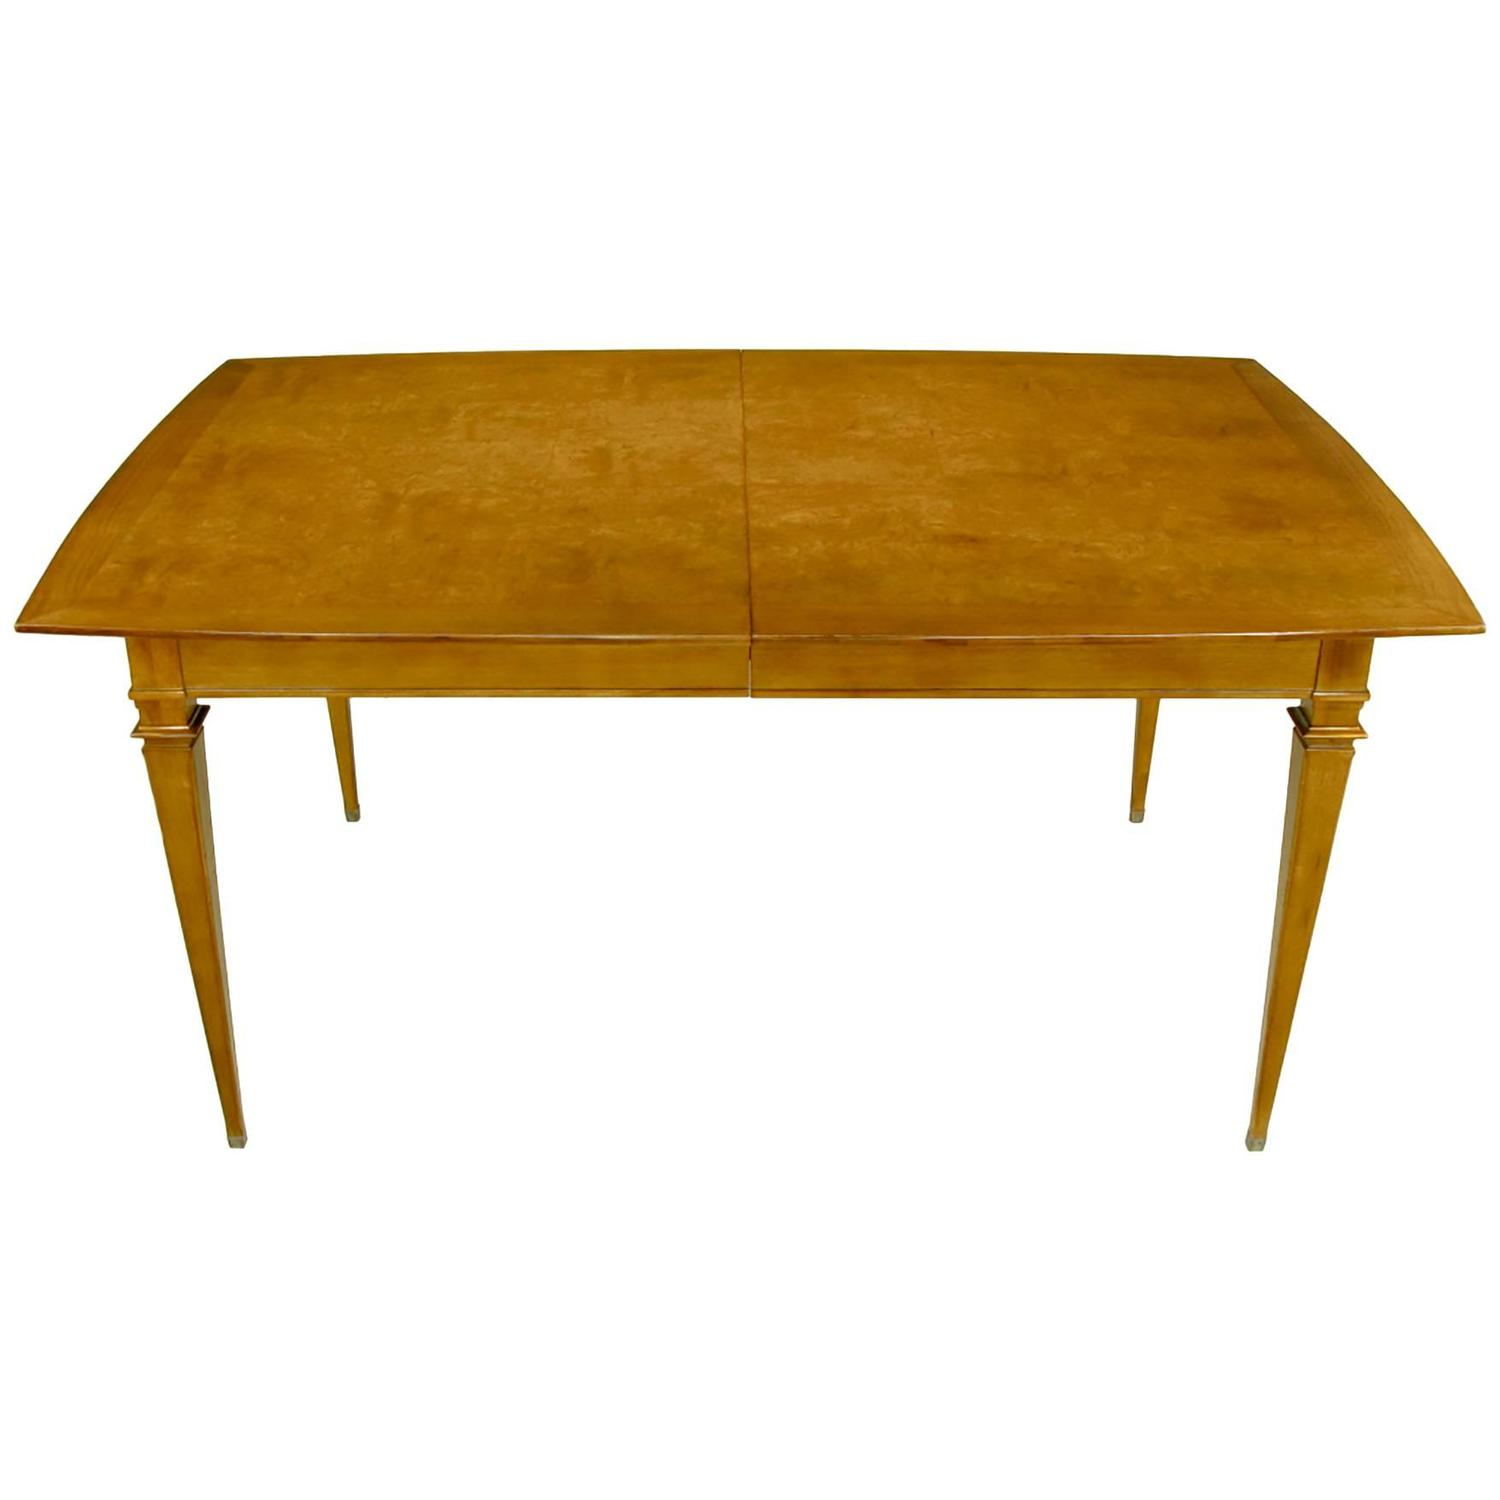 parquetry top dining table with copper accent for sale at 1stdibs